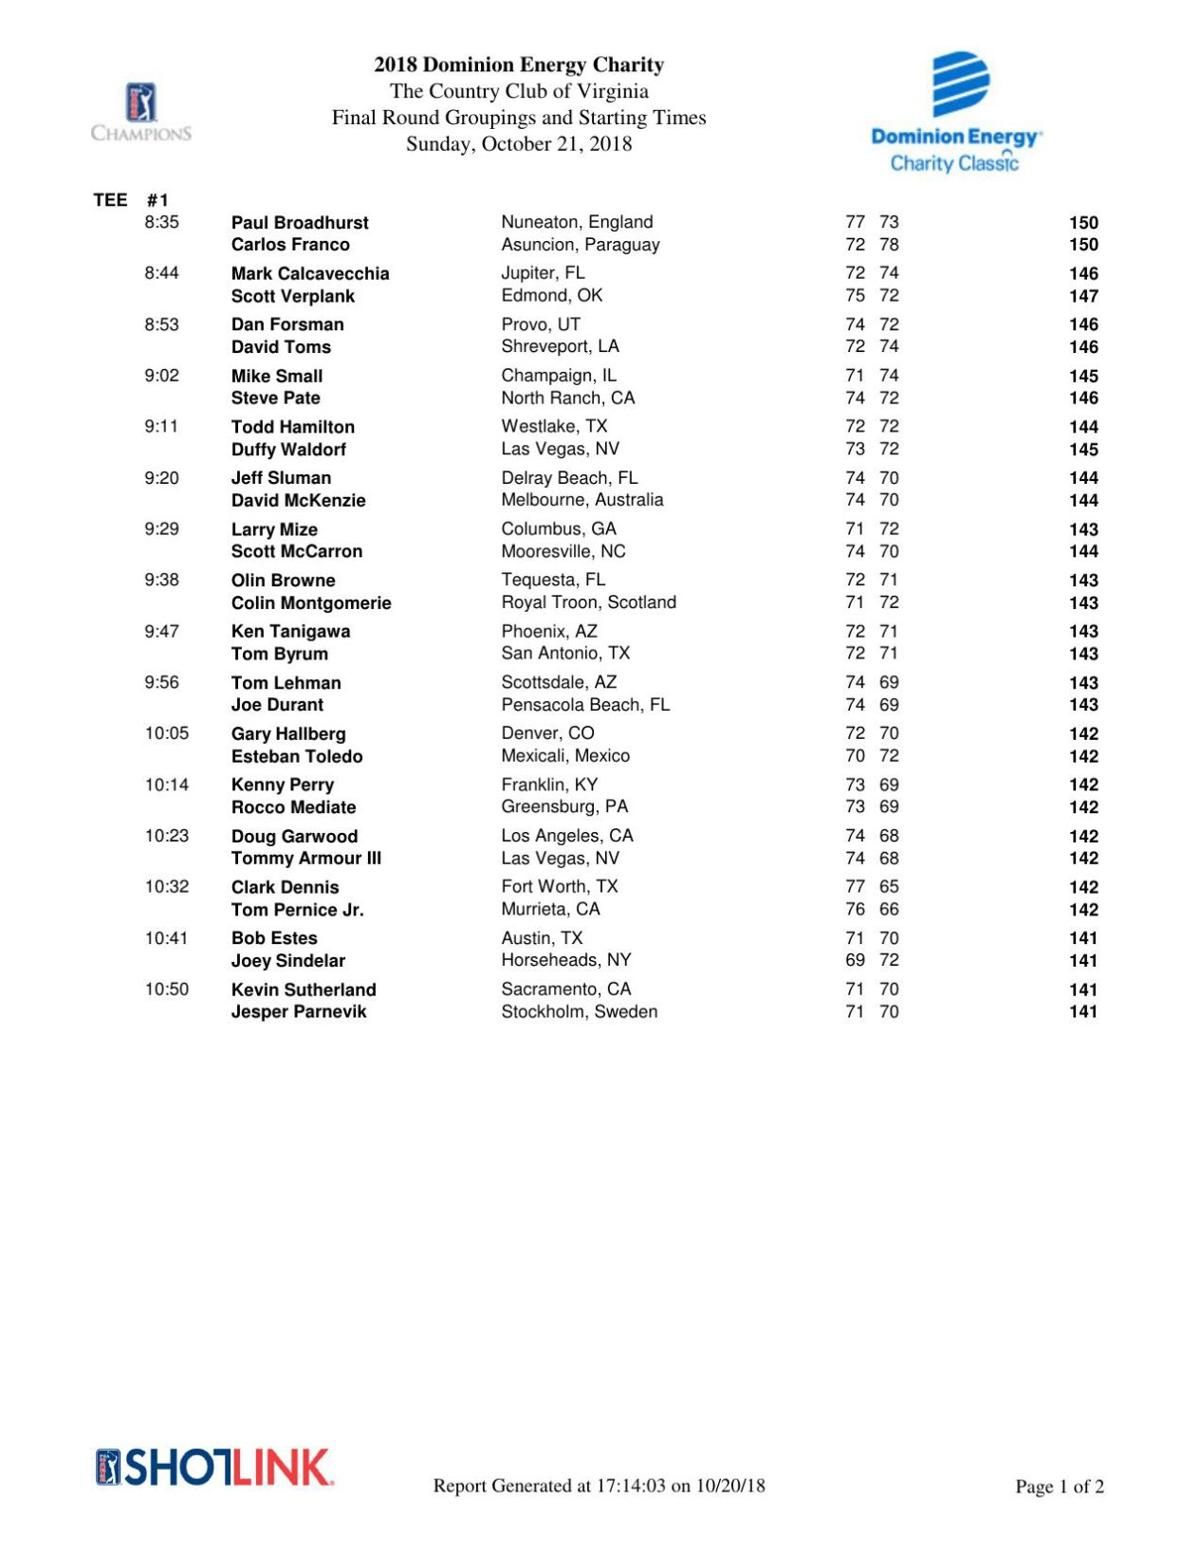 2018 Dominion Energy Charity Championship: Final-round pairings